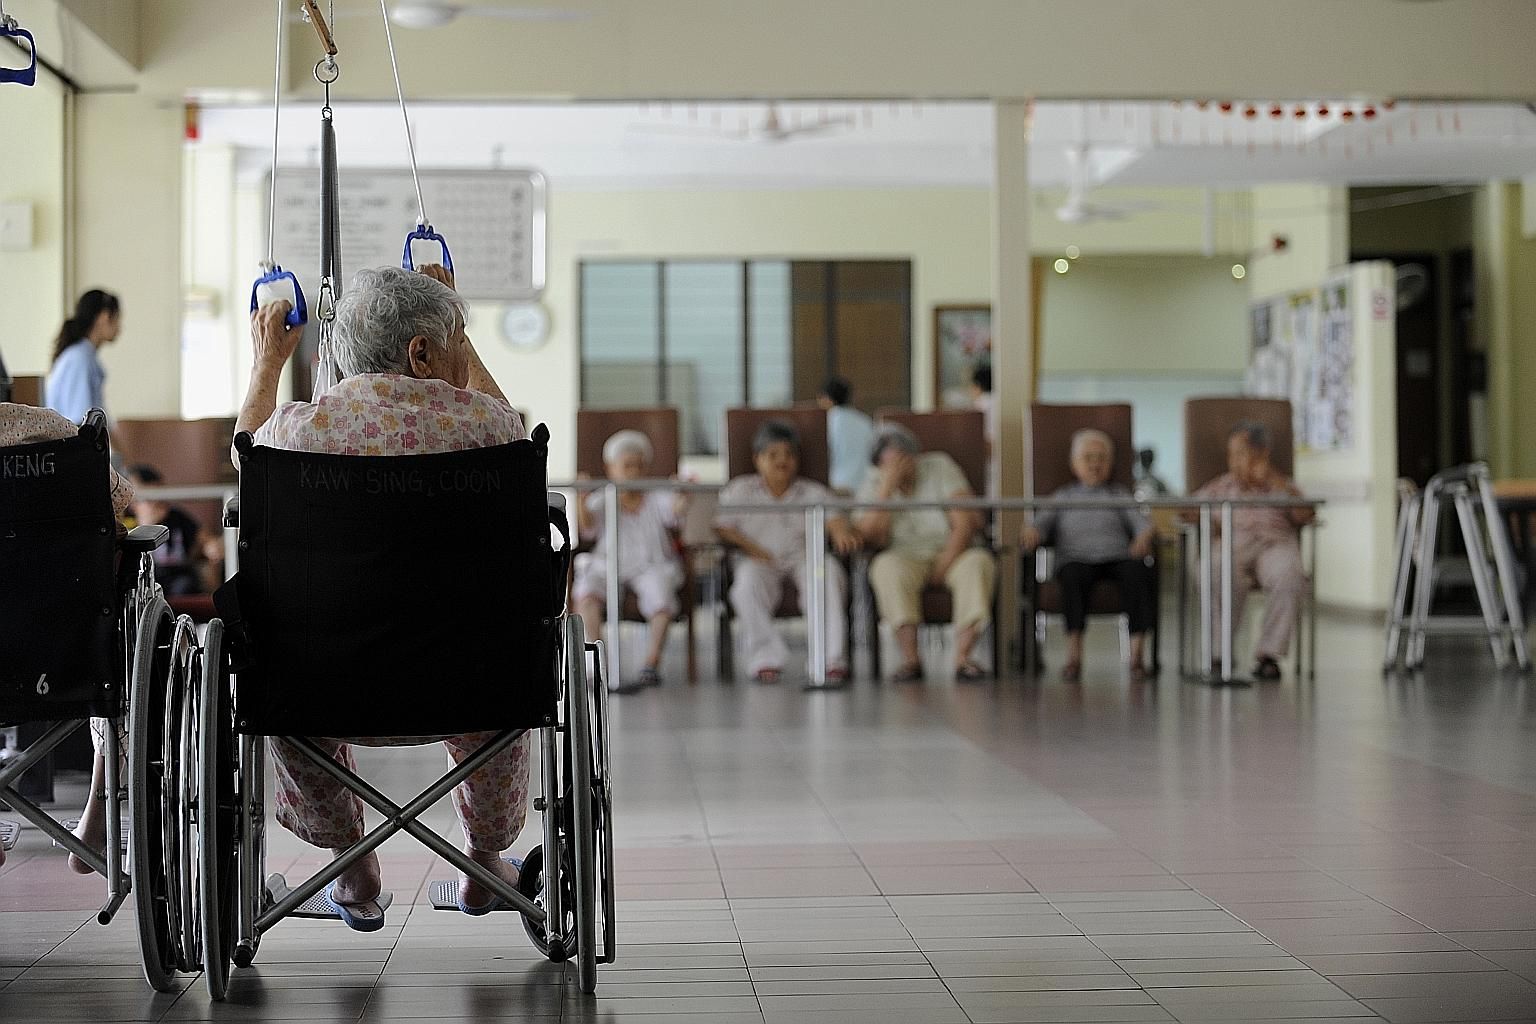 should elderly live in old folk s homes With asia's elderly population expected to reach 9227 million by the middle of this century, facilities and infrastructure to accommodate an increasing local ageing population have become a growing concern.